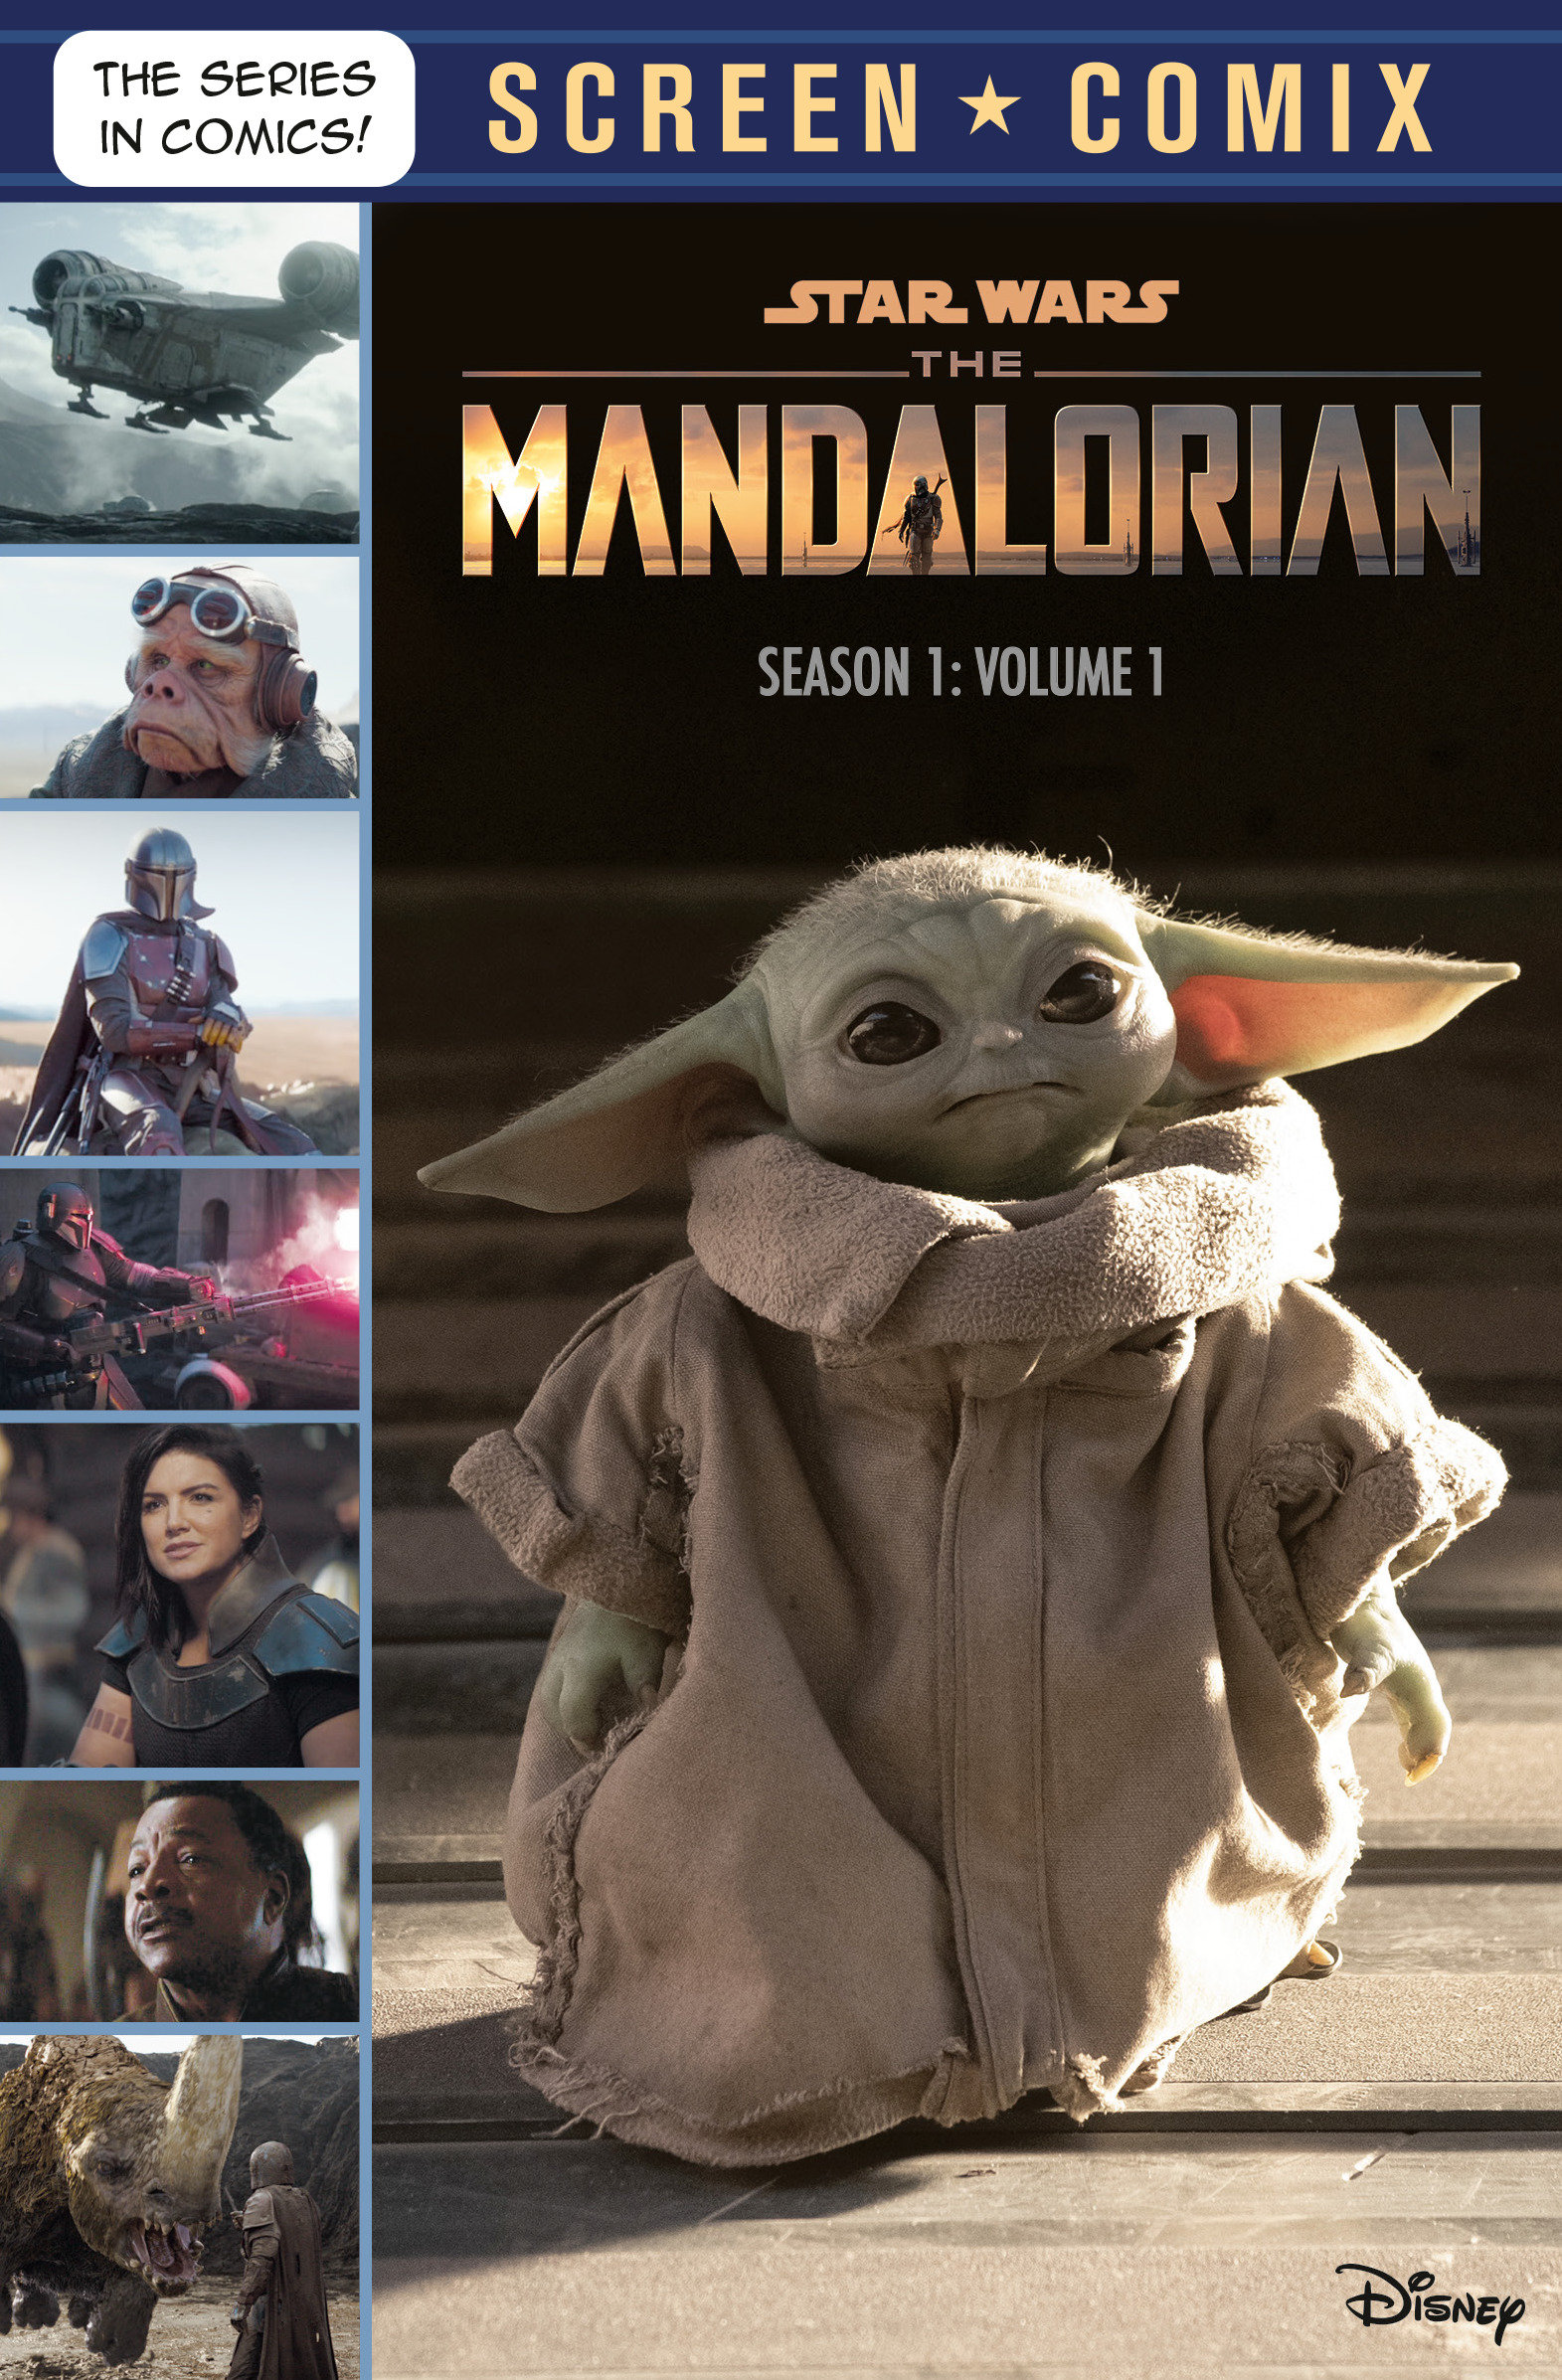 Screen Comix: The Mandalorian: Season 1 Volume 1 (26.01.2021)